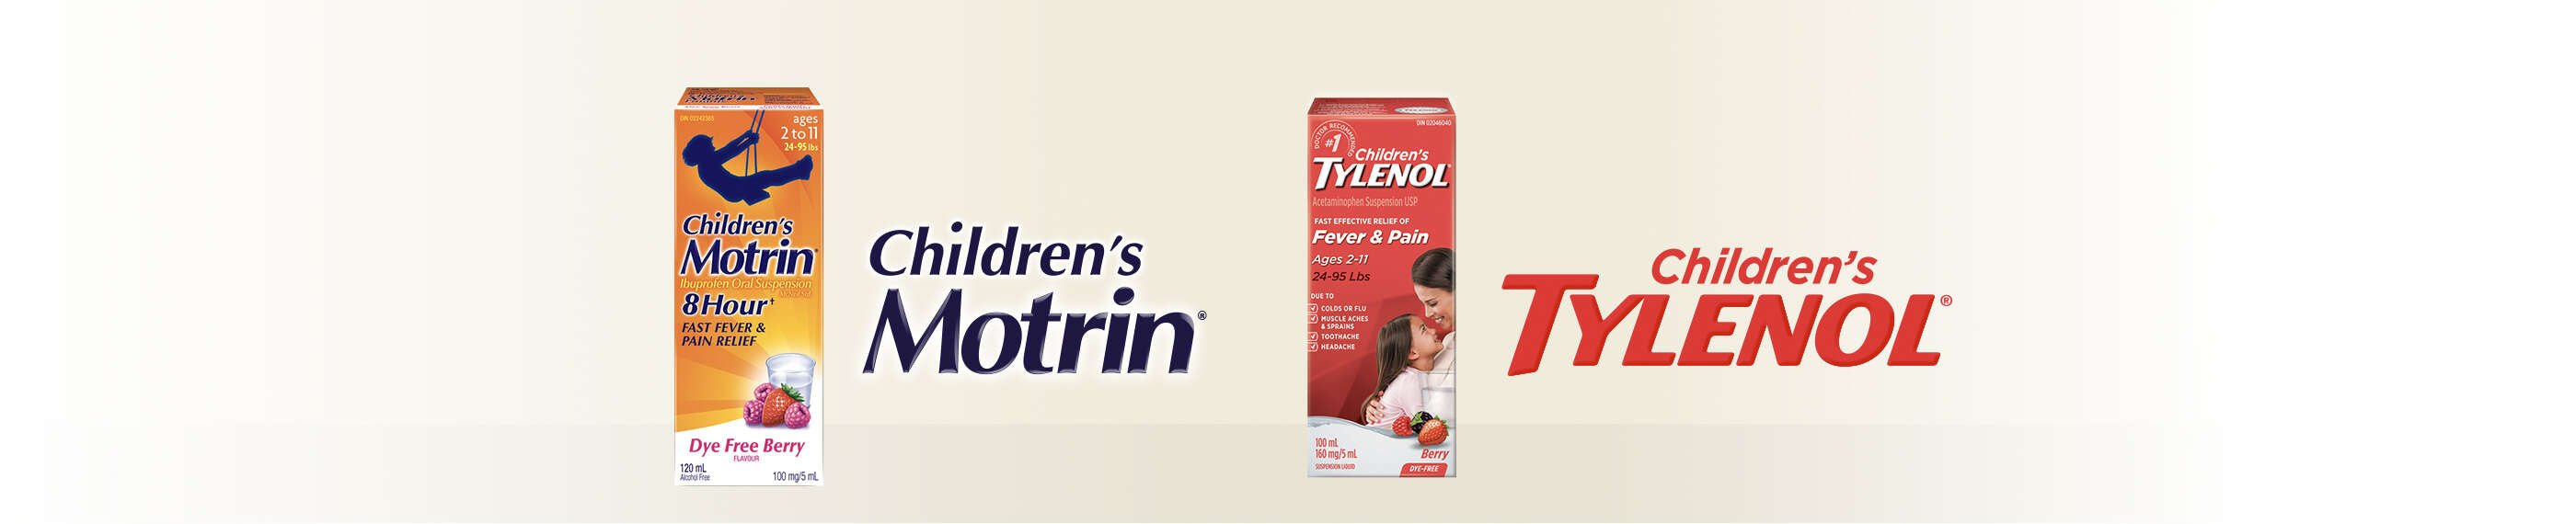 Children's Motrin and Children's Tylenol packaging